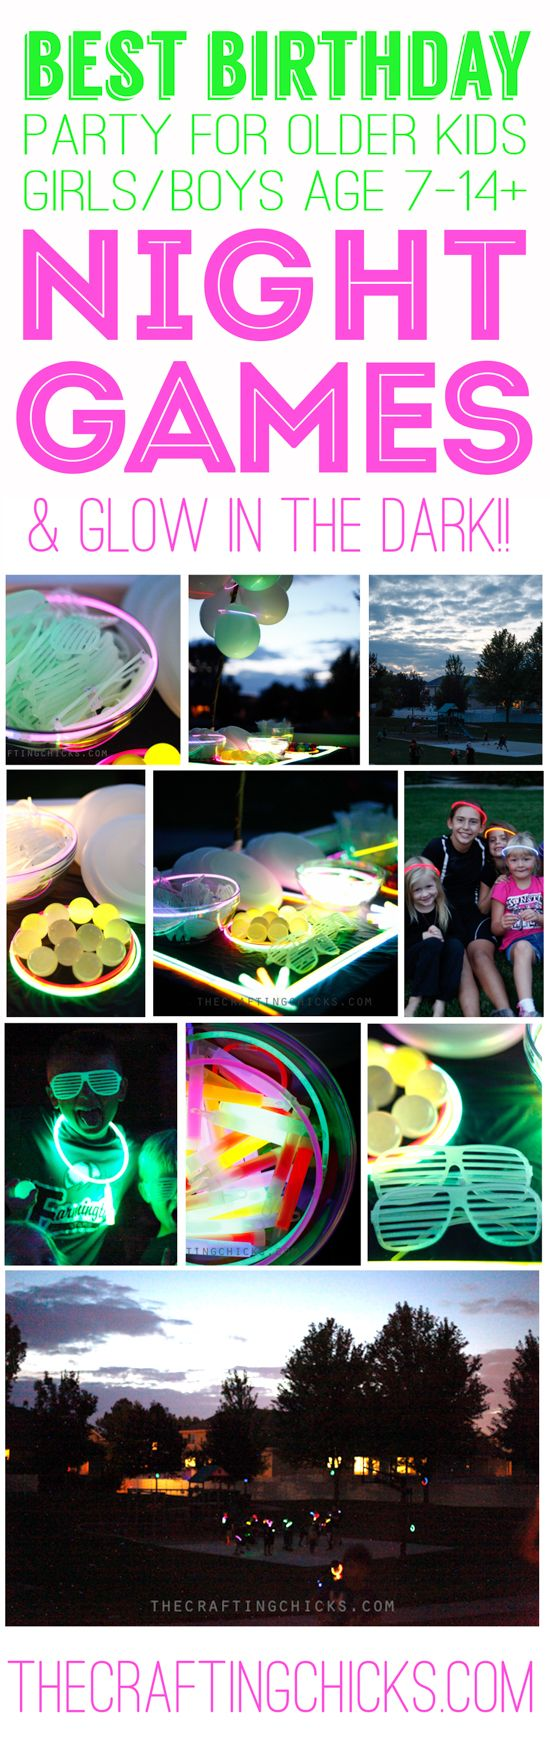 Best birthday party ideas for older kids night games amp glow in the